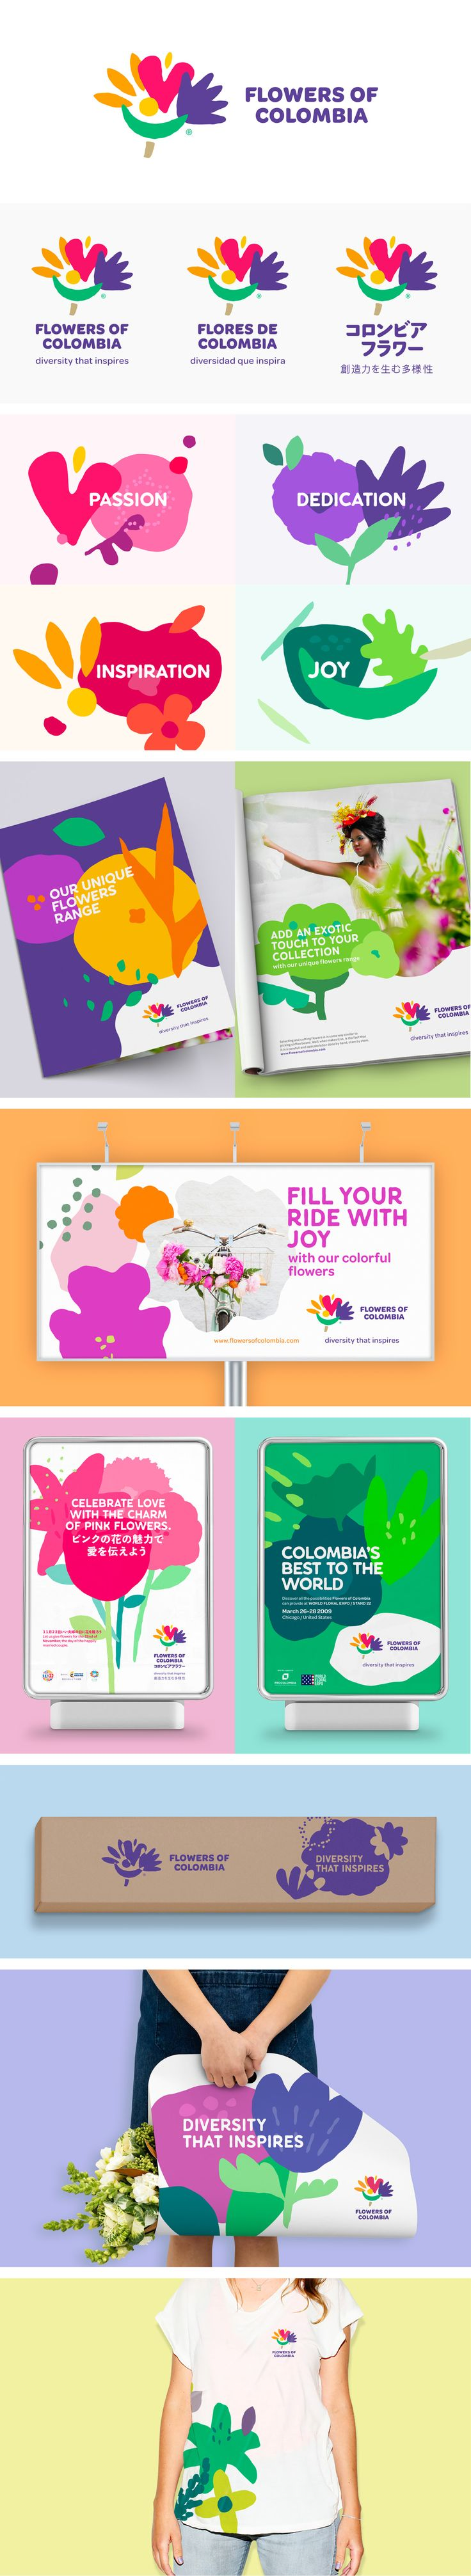 More corporate-designs are collected on: https://pinterest.com/rothenhaeusler/best-of-corporate-design/ · Agency: SmartBrands · Client: Flowers of Colombia #branding #identity #corporatedesign